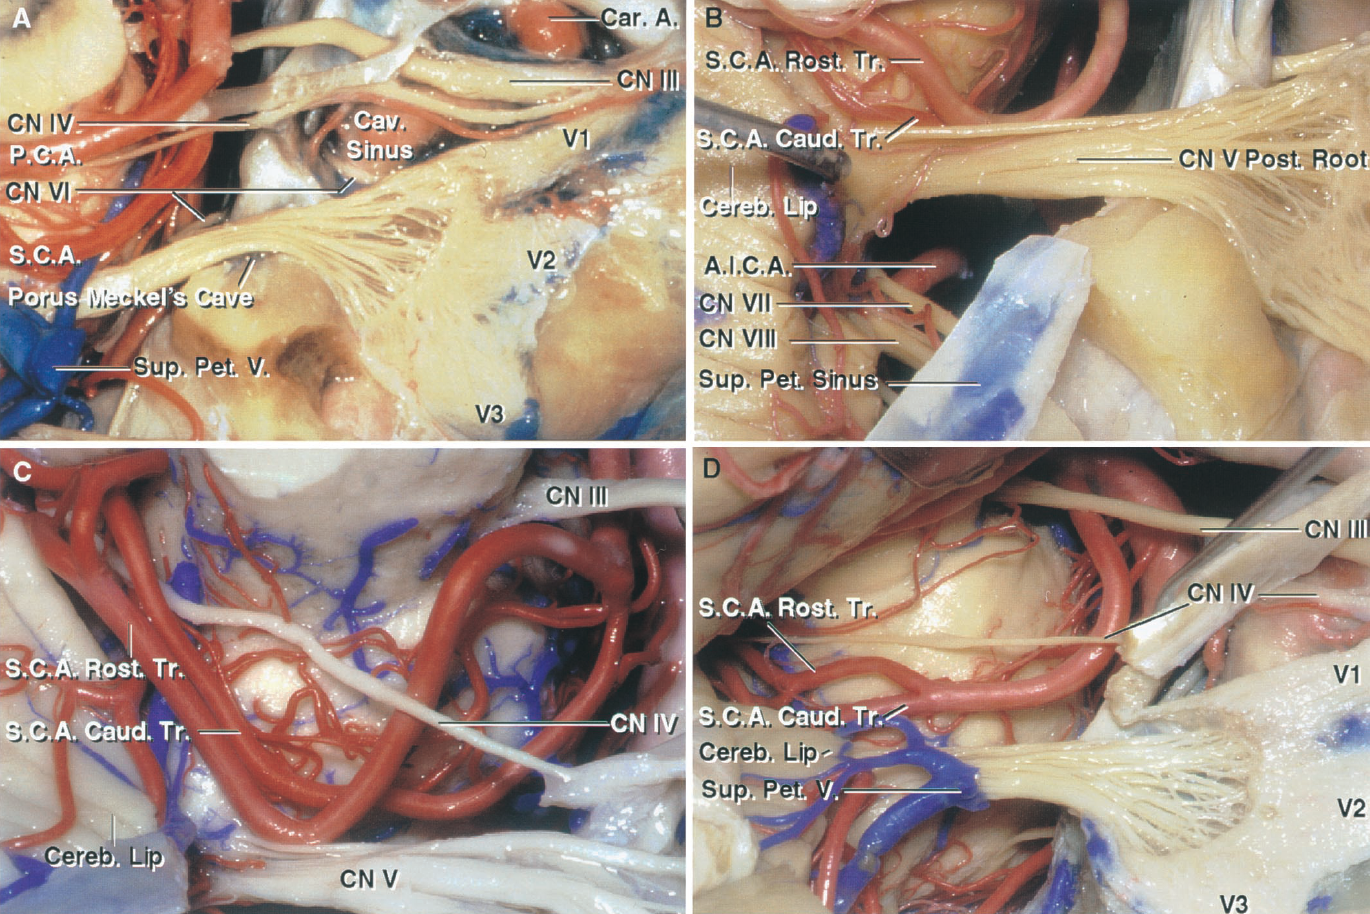 FIGURE 4.10. Trigeminal nerve and SCA relationships. A, the trigeminal posterior root, ganglion, and three divisions have been exposed by removing the dura from the lateral wall of Meckel's cave and the cavernous sinus. The posterior root enters the midpons below the SCA and is intertwined with the branches of the superior petrosal vein. B, the SCA loops downward and, at the junction of the rostral and caudal trunks, contacts the posterior trigeminal root at the pontine junction. The cerebellar lip projects forward and may block access to the junction of the trigeminal nerve and pons in the retrosigmoid approach. C, SCA with an early bifurcation. The rostral trunk loops downward and indents the upper surface of the trigeminal nerve. D, another SCA passes around the pons and bifurcates into its rostral and caudal trunks above the trigeminal root entry zone. A., artery; A.I.C.A., anteroinferior cerebellar artery; Car., carotid; Caud., caudal; Cav., cavernous; Cereb., cerebellar; CN, cranial nerve; Pet., petrosal; Post., posterior; Rost., rostral; S.C.A., superior cerebellar artery; Sup., superior; Tr., trunk; V., vein.